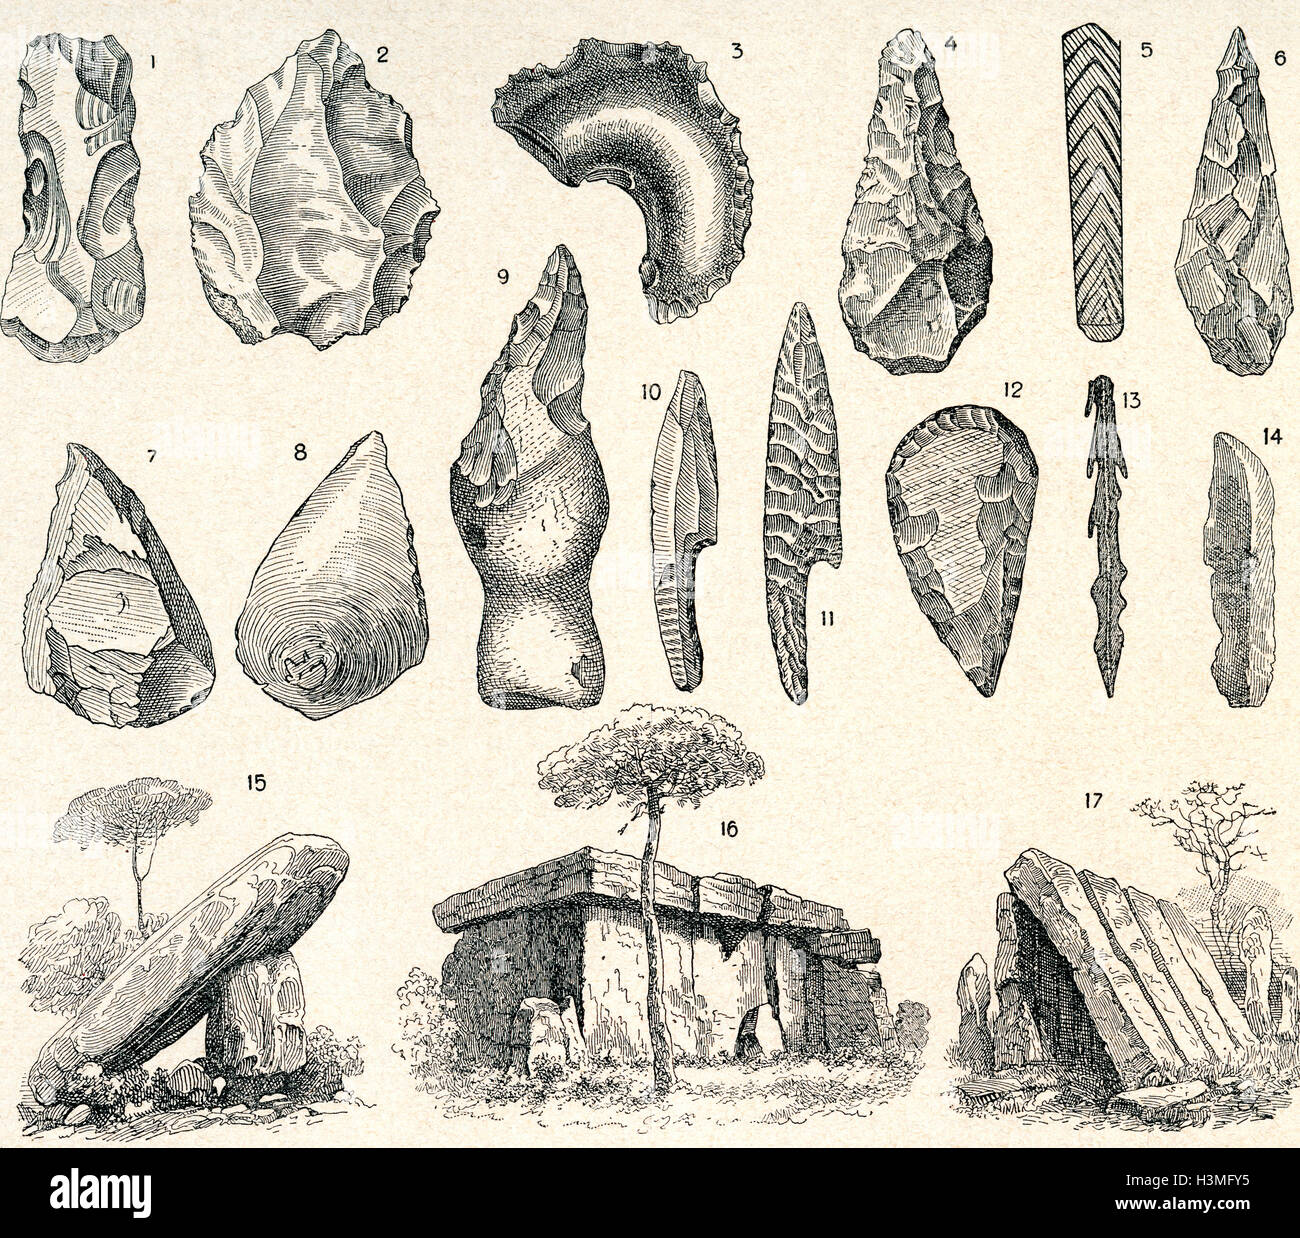 Stone Age weapons, tools and architecture. - Stock Image